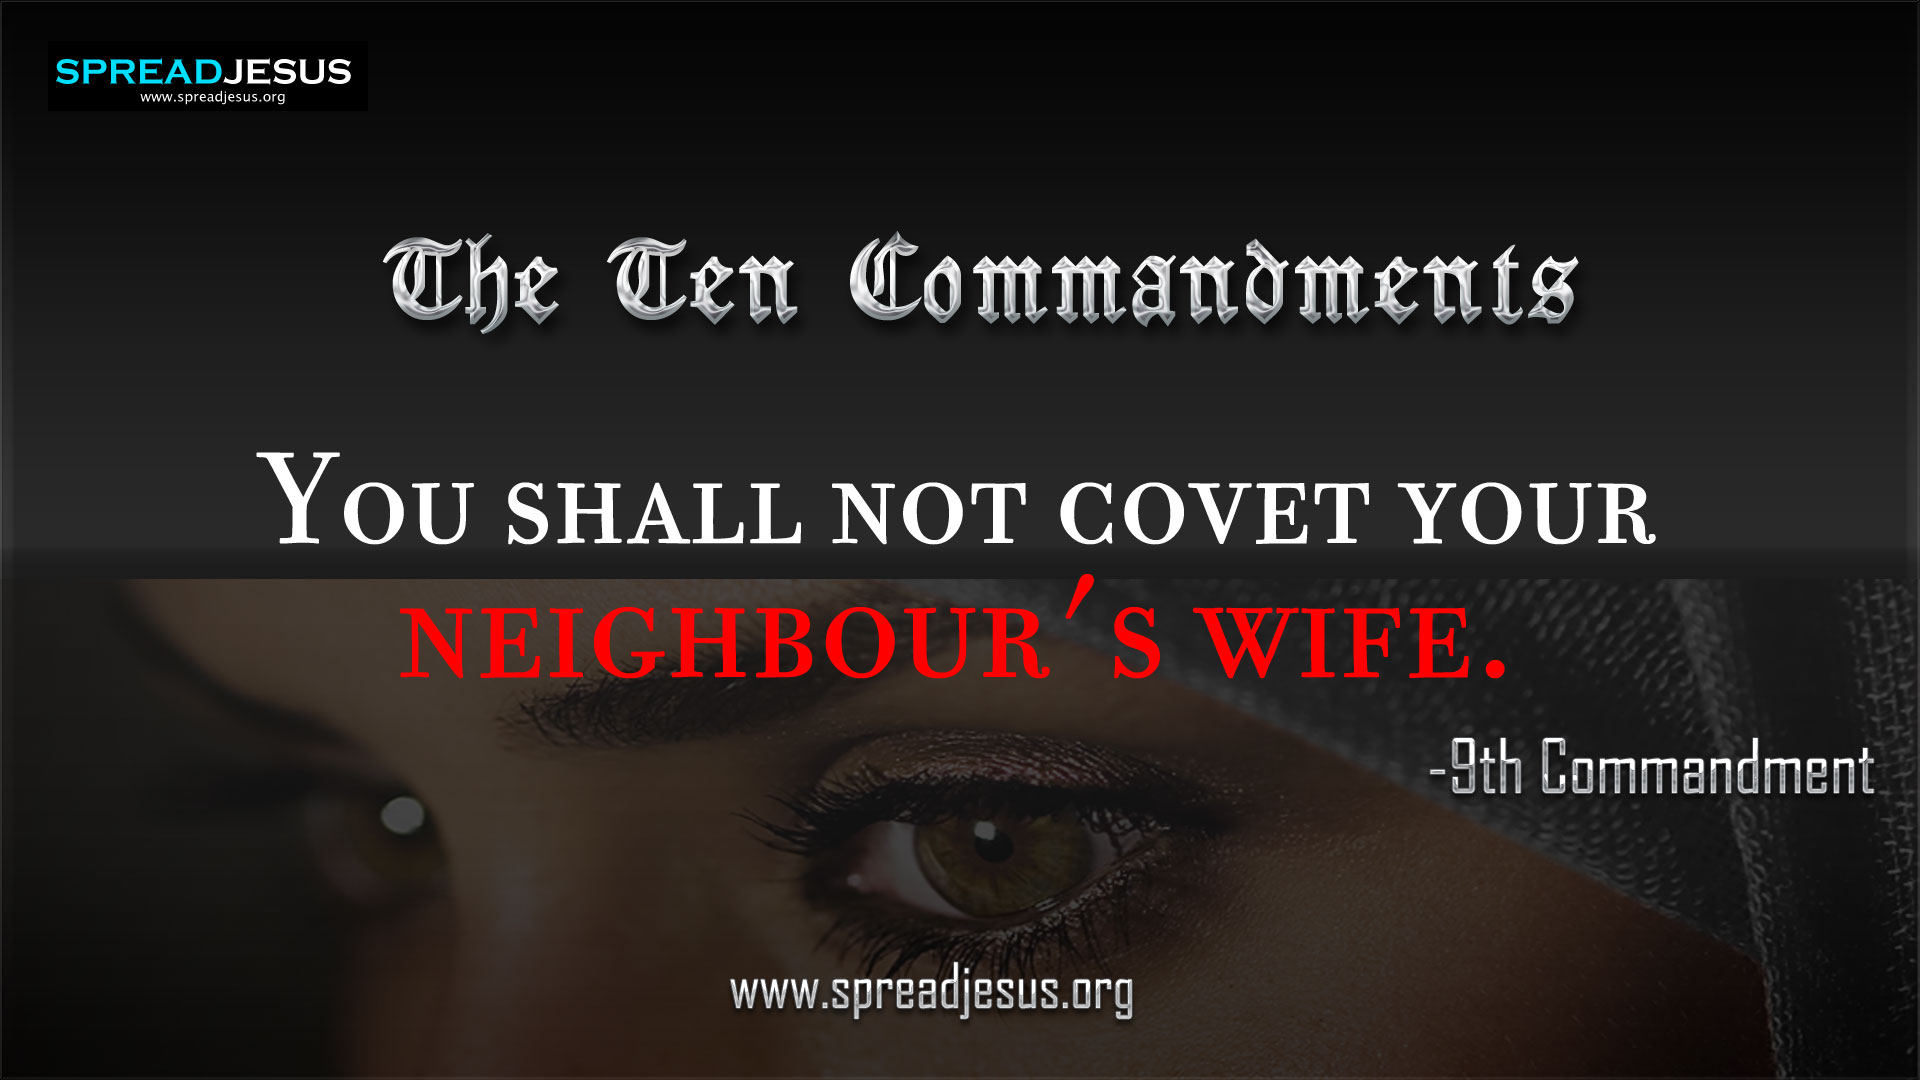 9th Commandment-You shall not covet your neighbour's wife.:The Ten Commandments:9th Commandment in 10 Commandments:10 Commandments Wallpapers